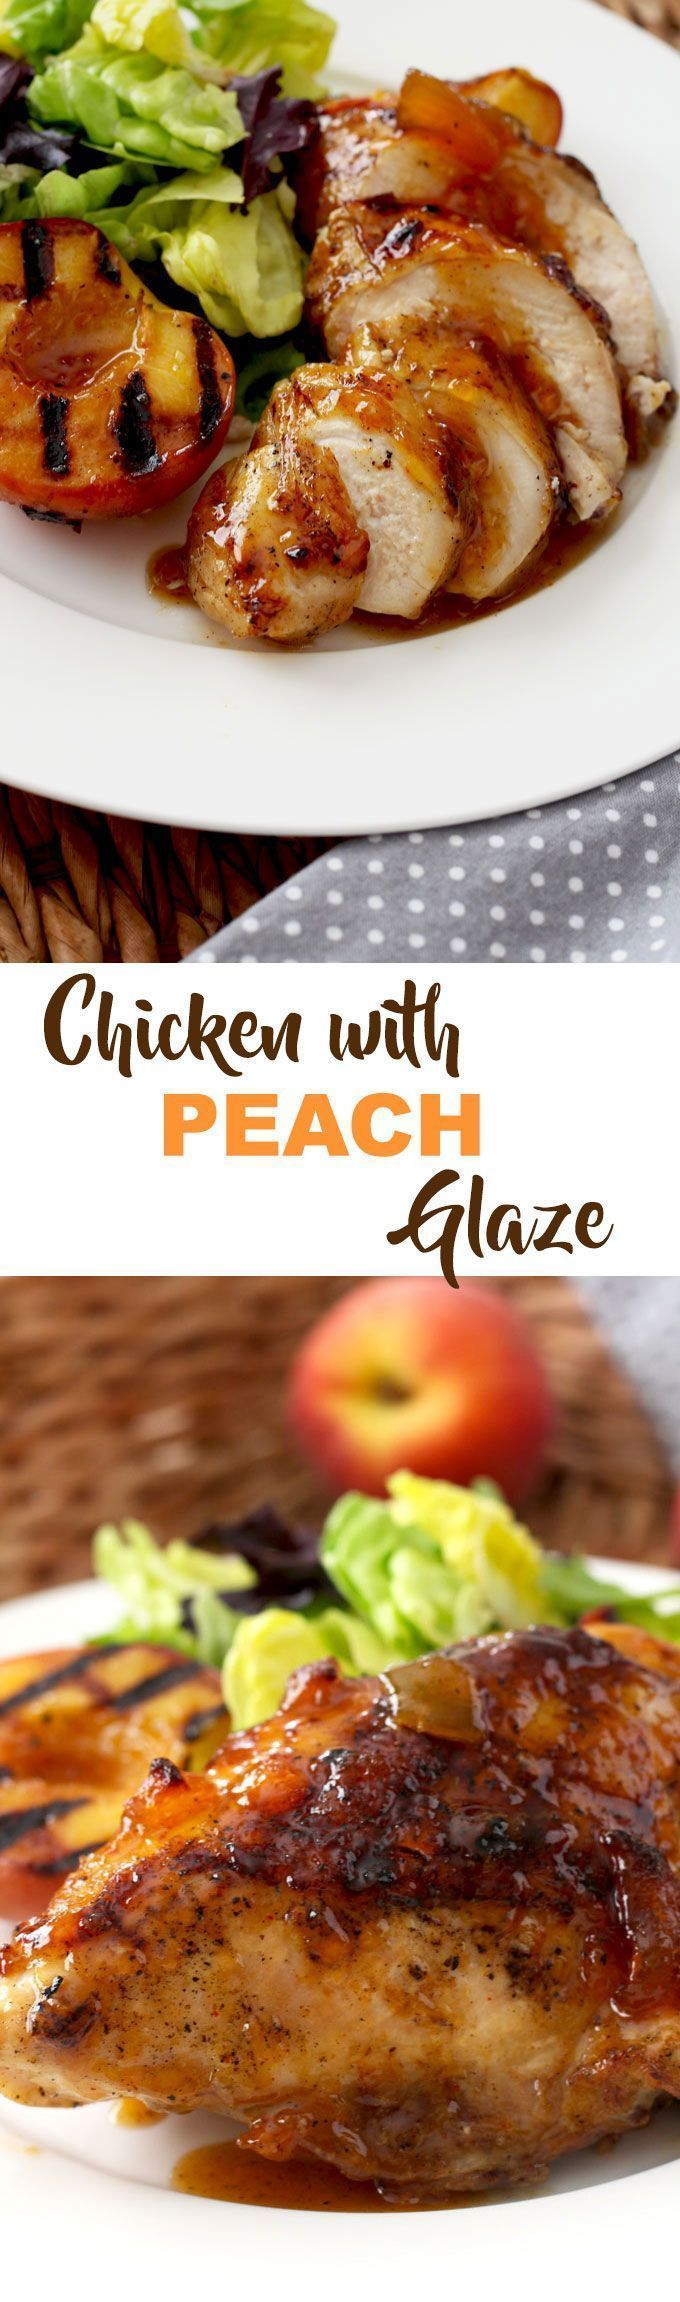 Sticky and sweet with a bit of spice this Chicken with Peach Glaze is easy to make and finger licking good! #peachglaze #BBQ #grilled #grilling #chicken #peaches